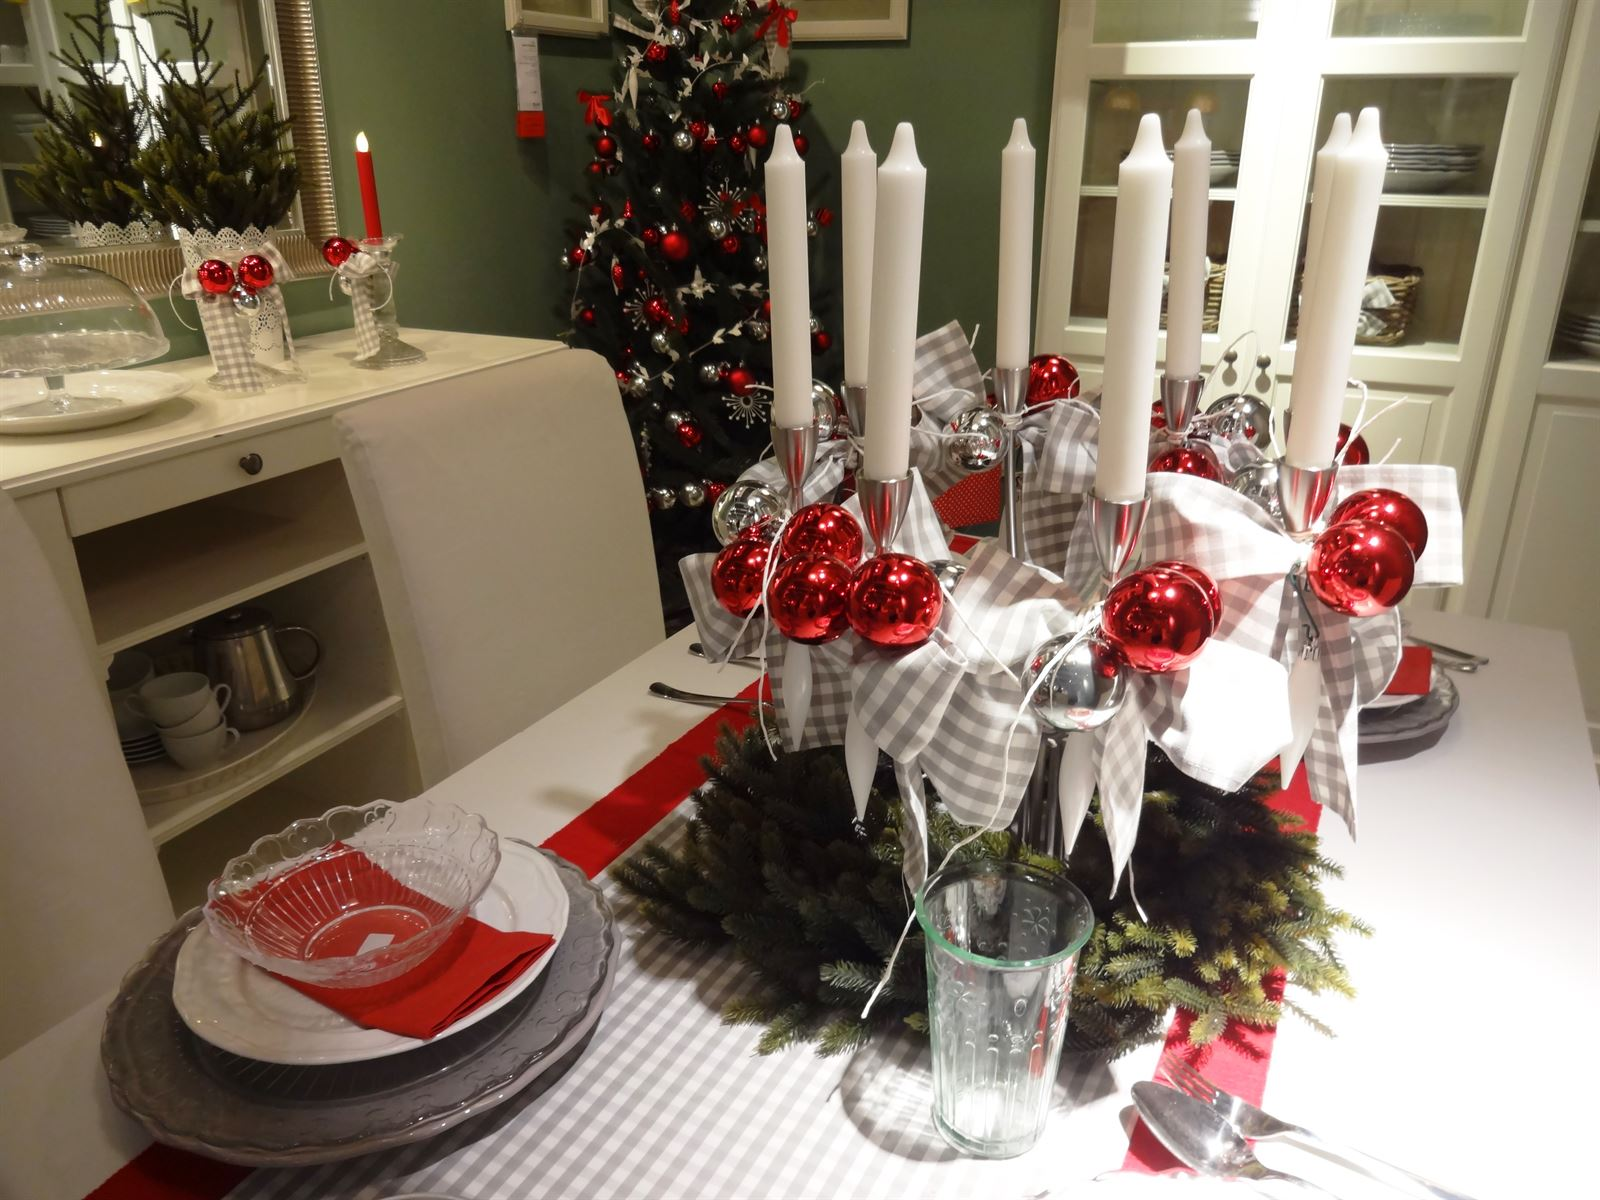 Christmas started at IKEA :: Rinnoo.net Website